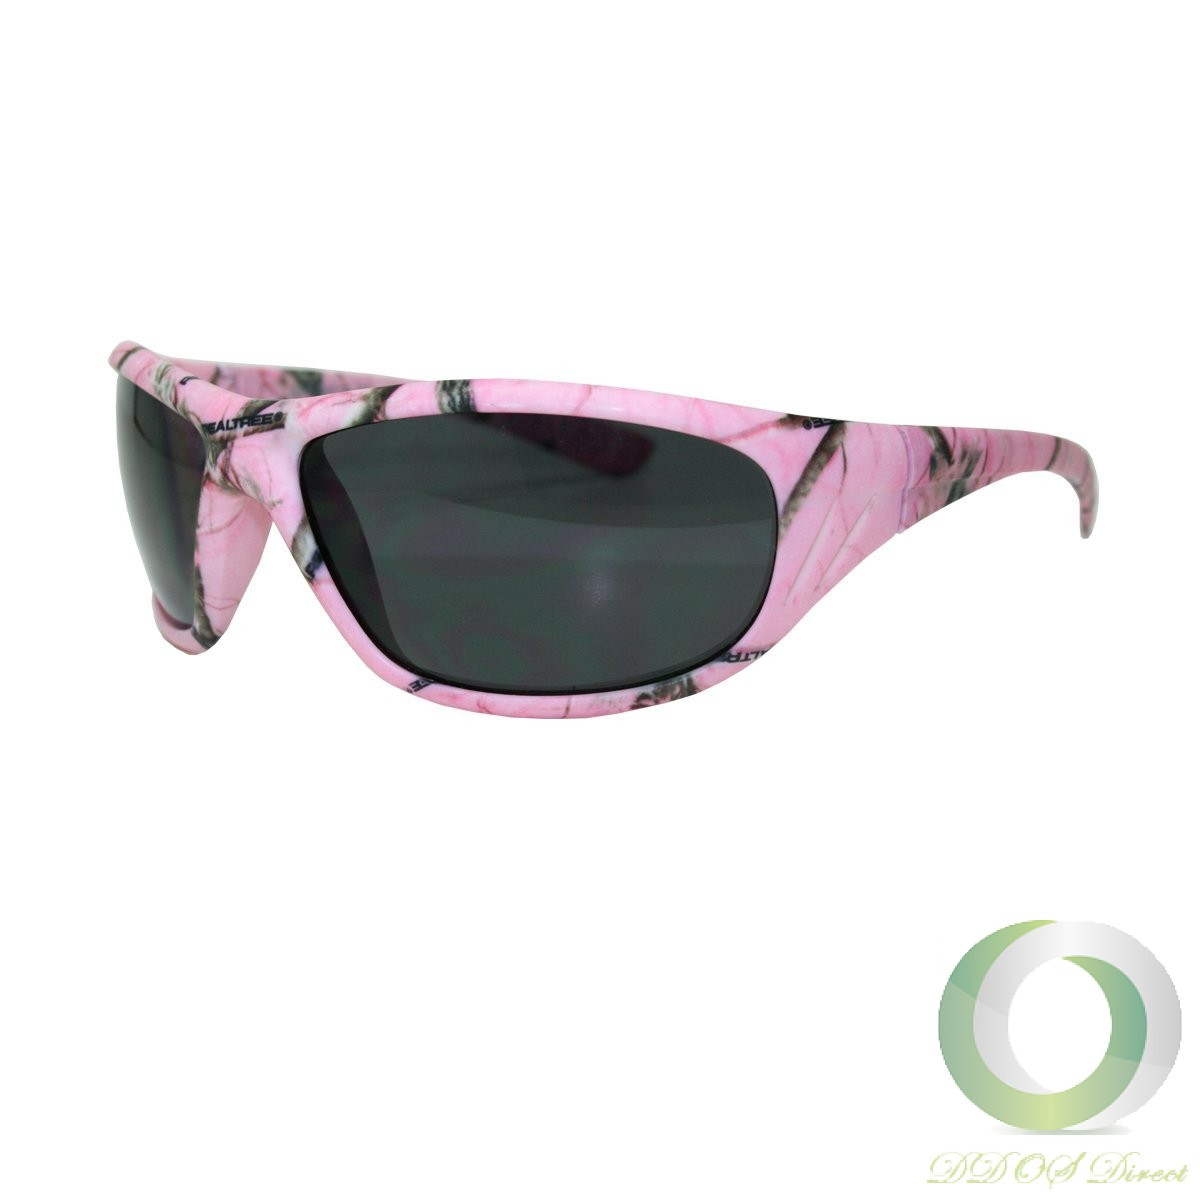 Details about New Great Quality Aes Optics Realtree Ladies Pink Camo